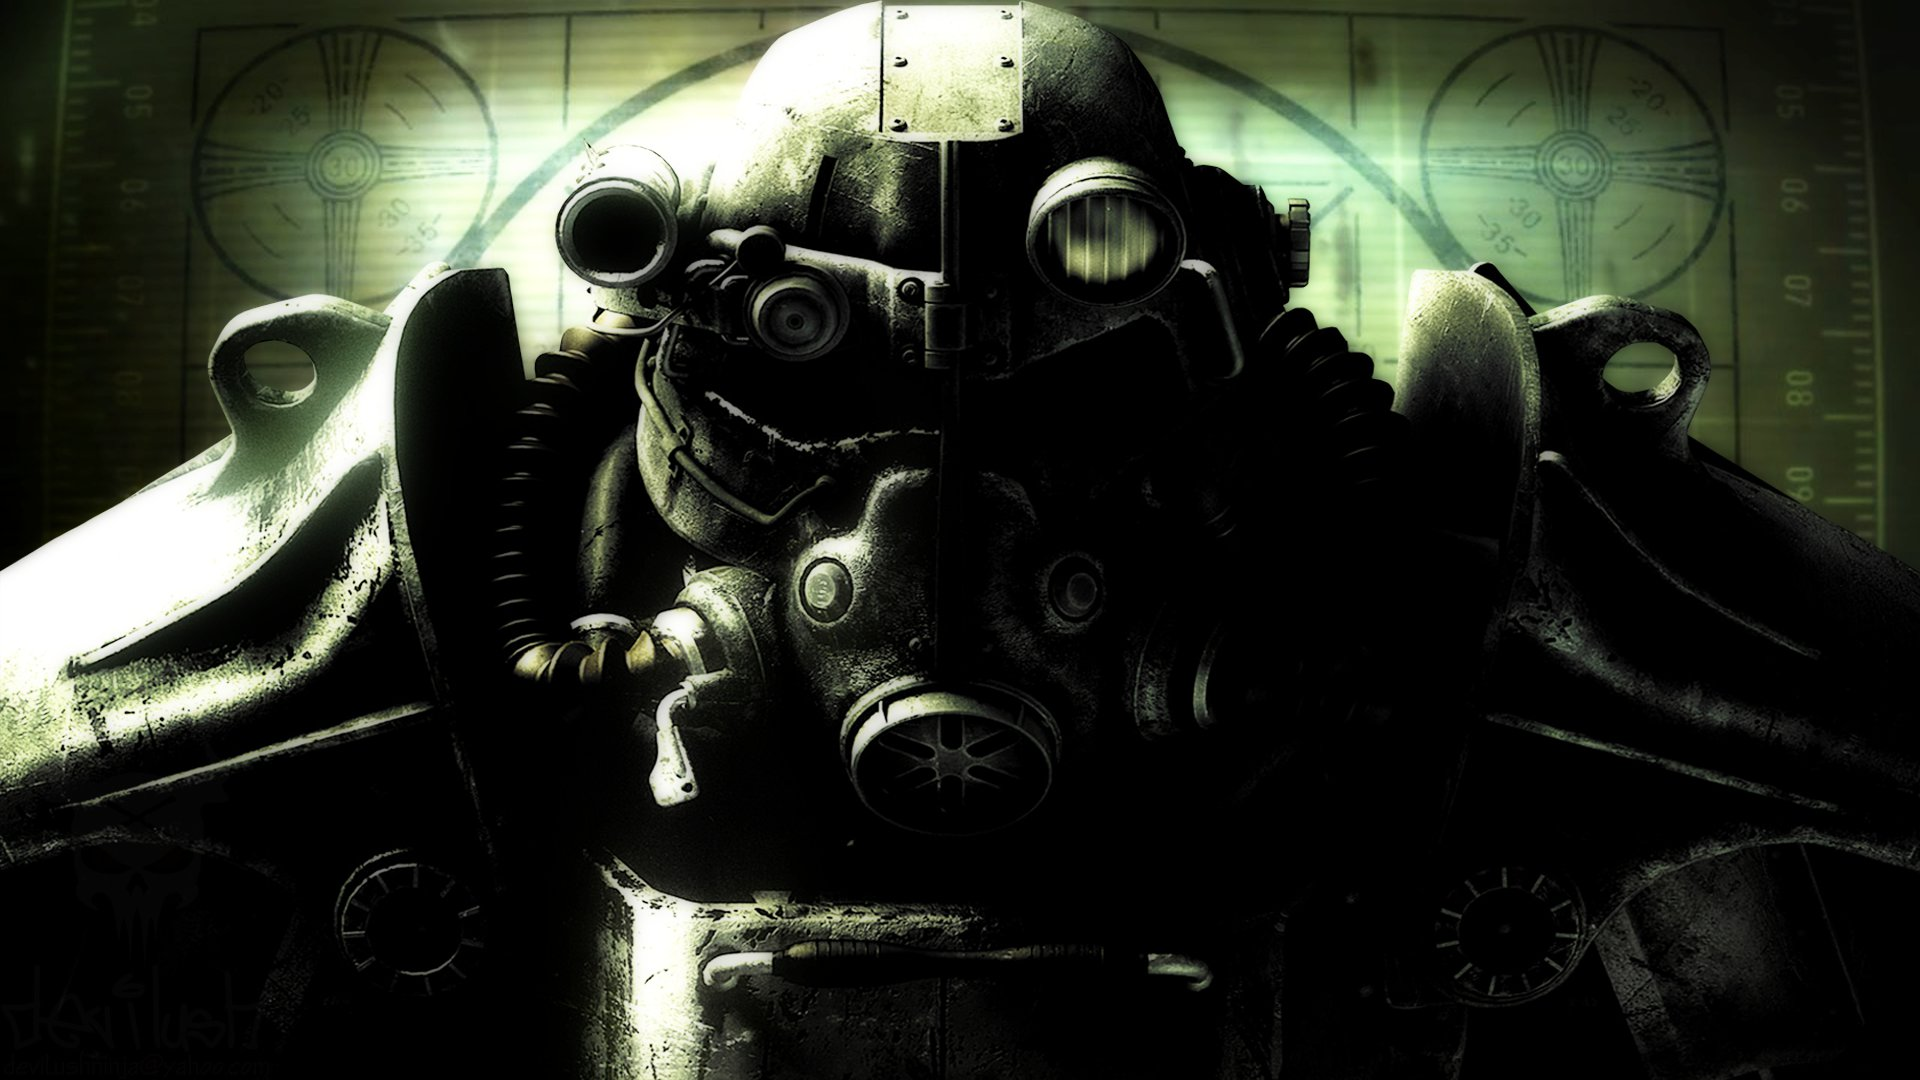 Fallout 3 BoS HD Wallpaper Fallout 3 Brotherhood of Steel Wallpaper 1920x1080